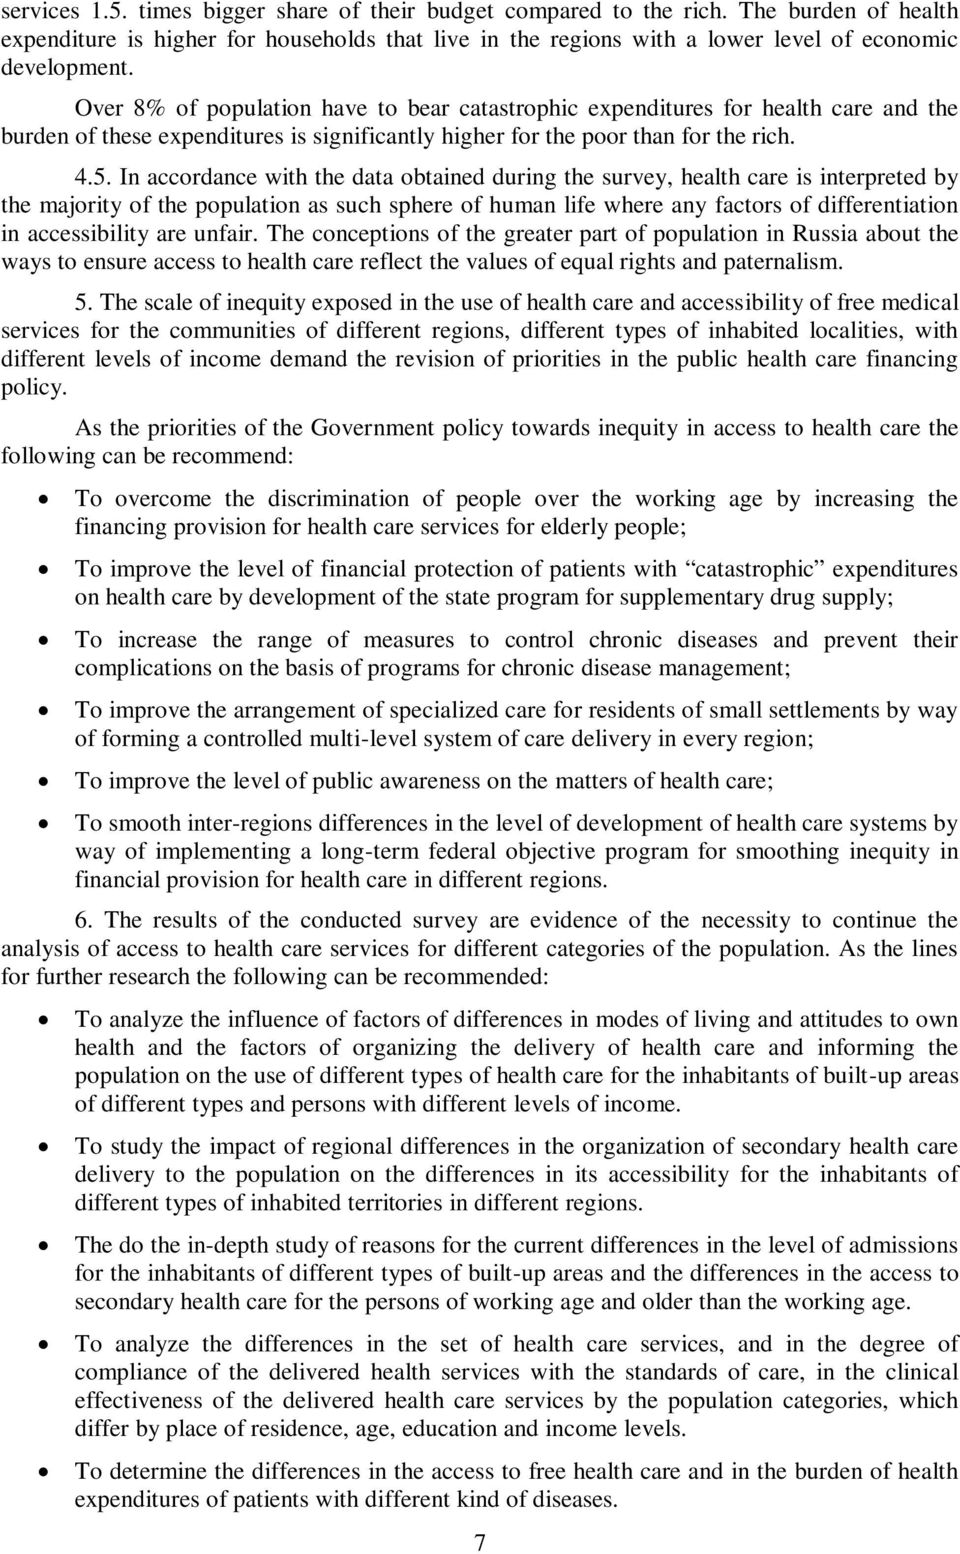 In accordance with the data obtained during the survey, health care is interpreted by the majority of the population as such sphere of human life where any factors of differentiation in accessibility